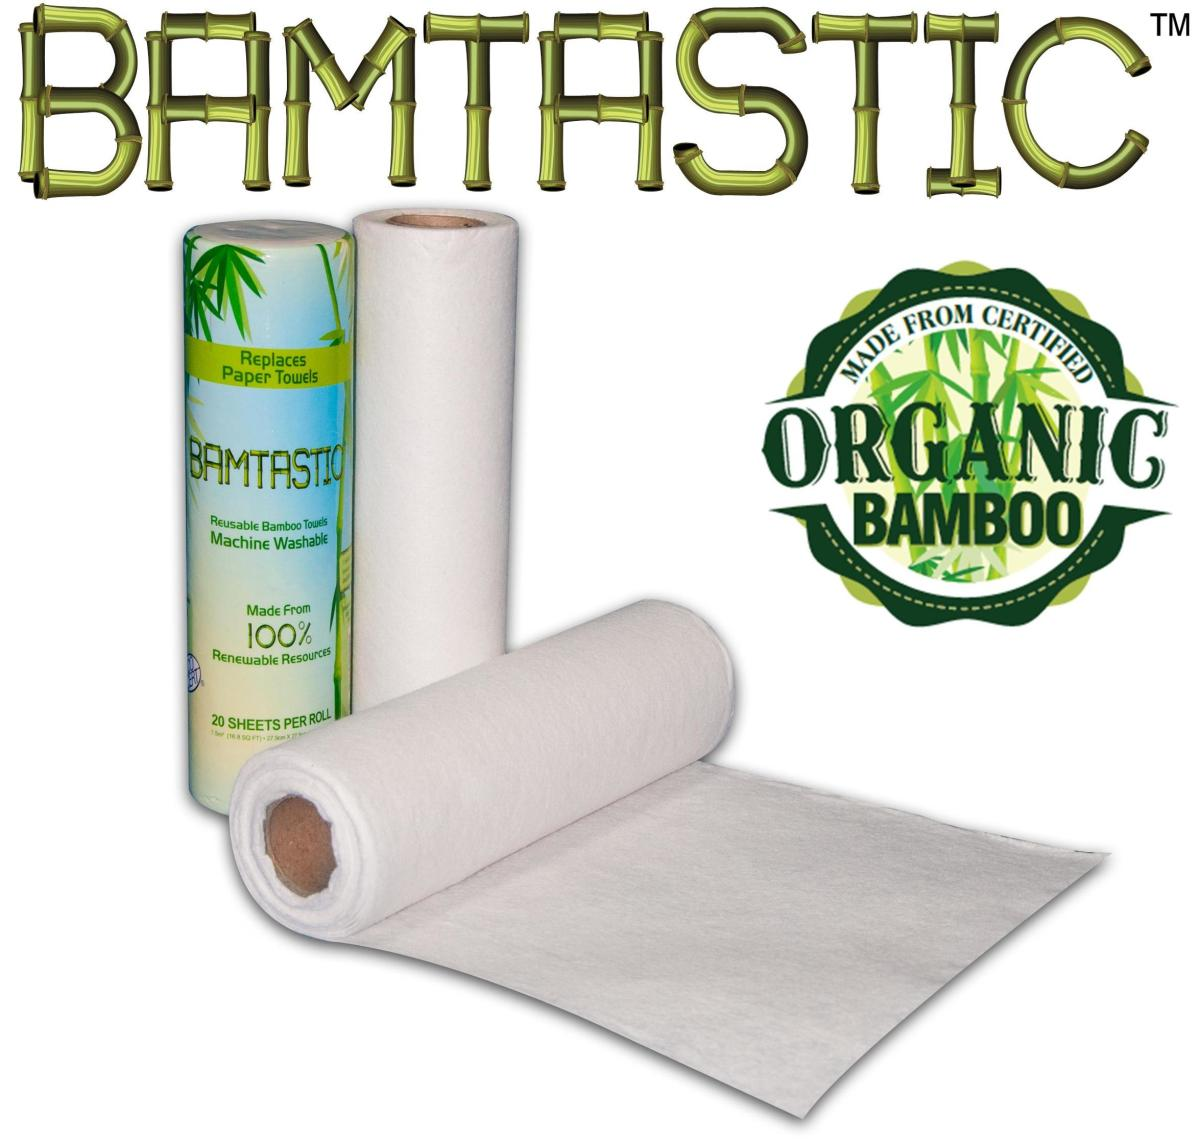 Bamtastic's Bamboo Towels